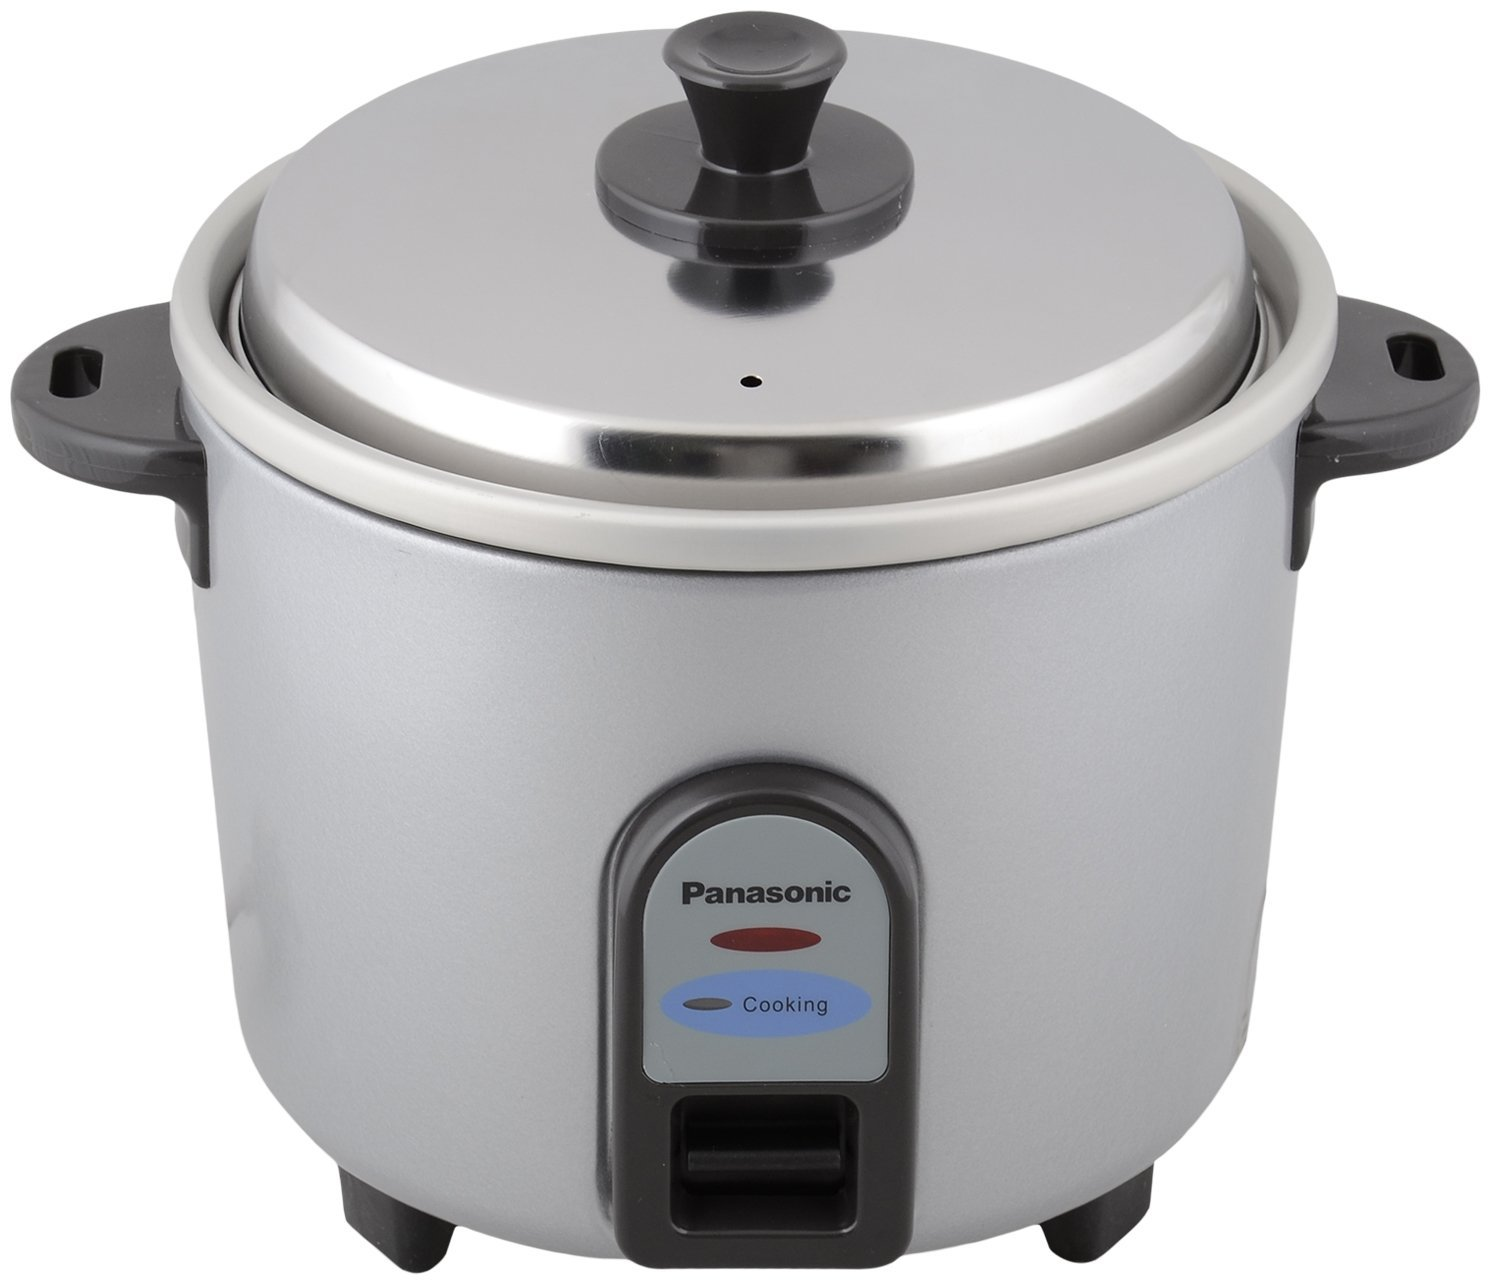 Buy Panasonic SR-WA10 2.7-Litre Automatic Electric Rice Cooker (Burgundy)  Online at Low Prices in India - Amazon.in